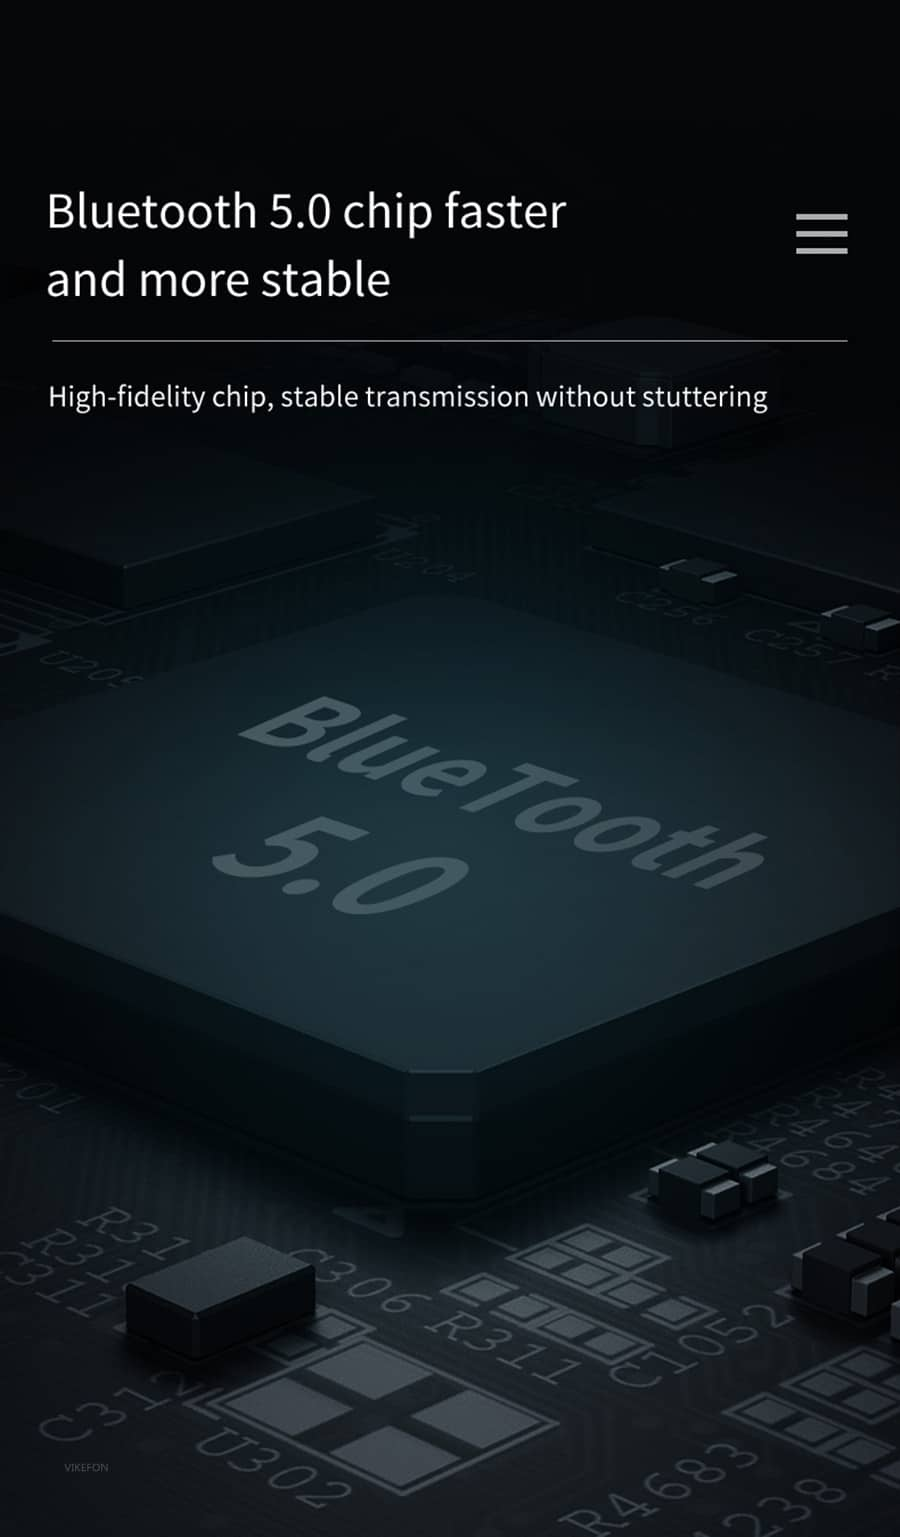 Bluetooth 5.0 Audio Receiver Transmitter with LCD Display 2IN1_Faster and more stable